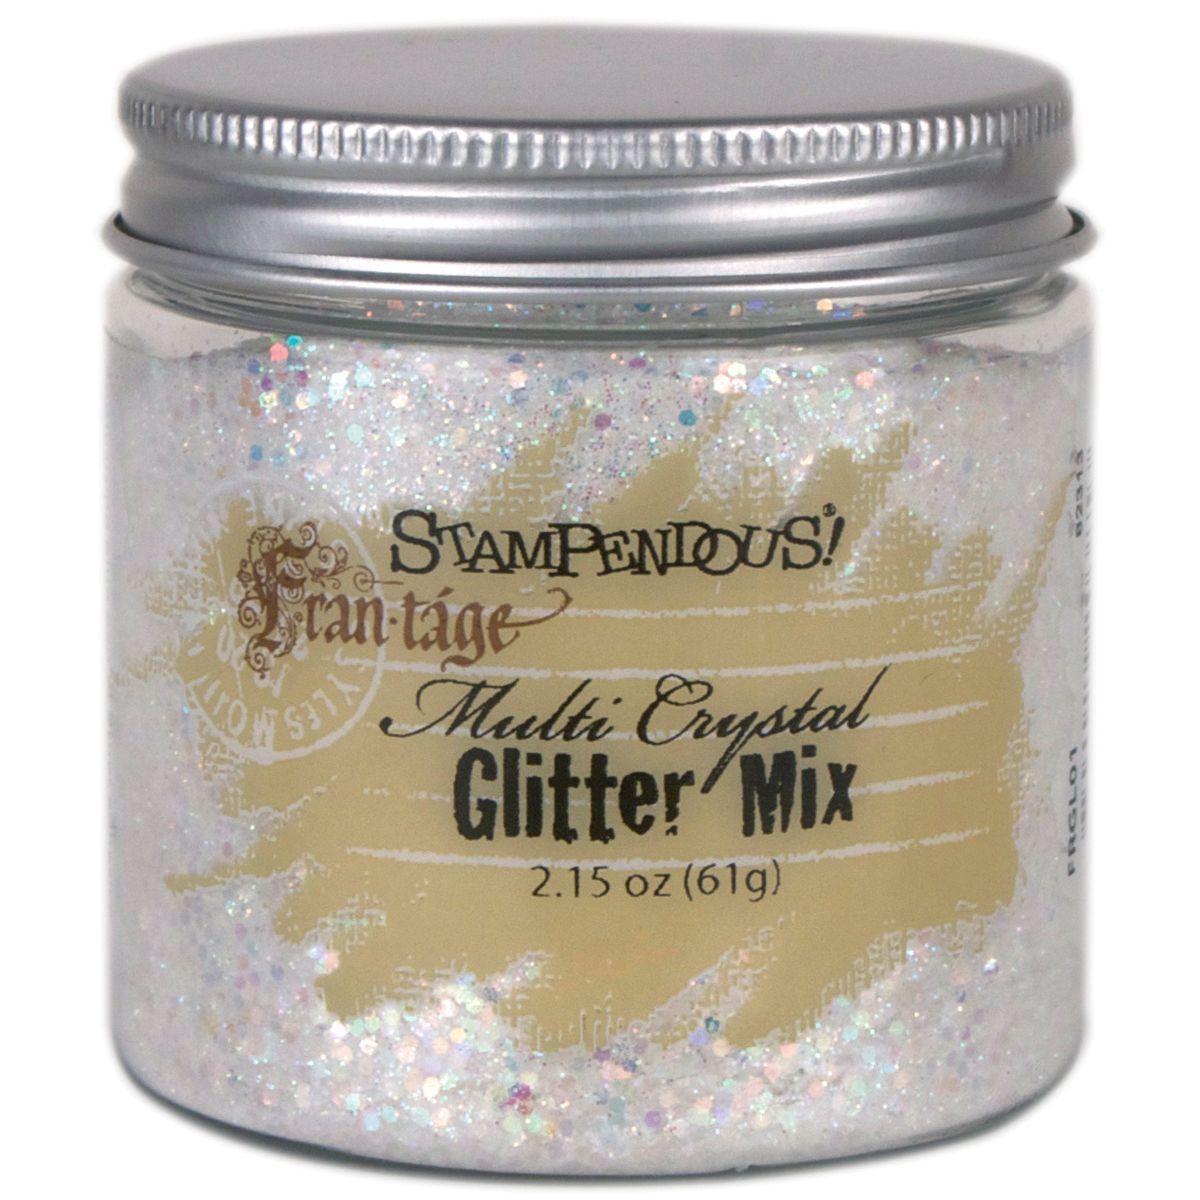 Stampendous Frantage Glitter Mix 2.15oz-Multi Crystal